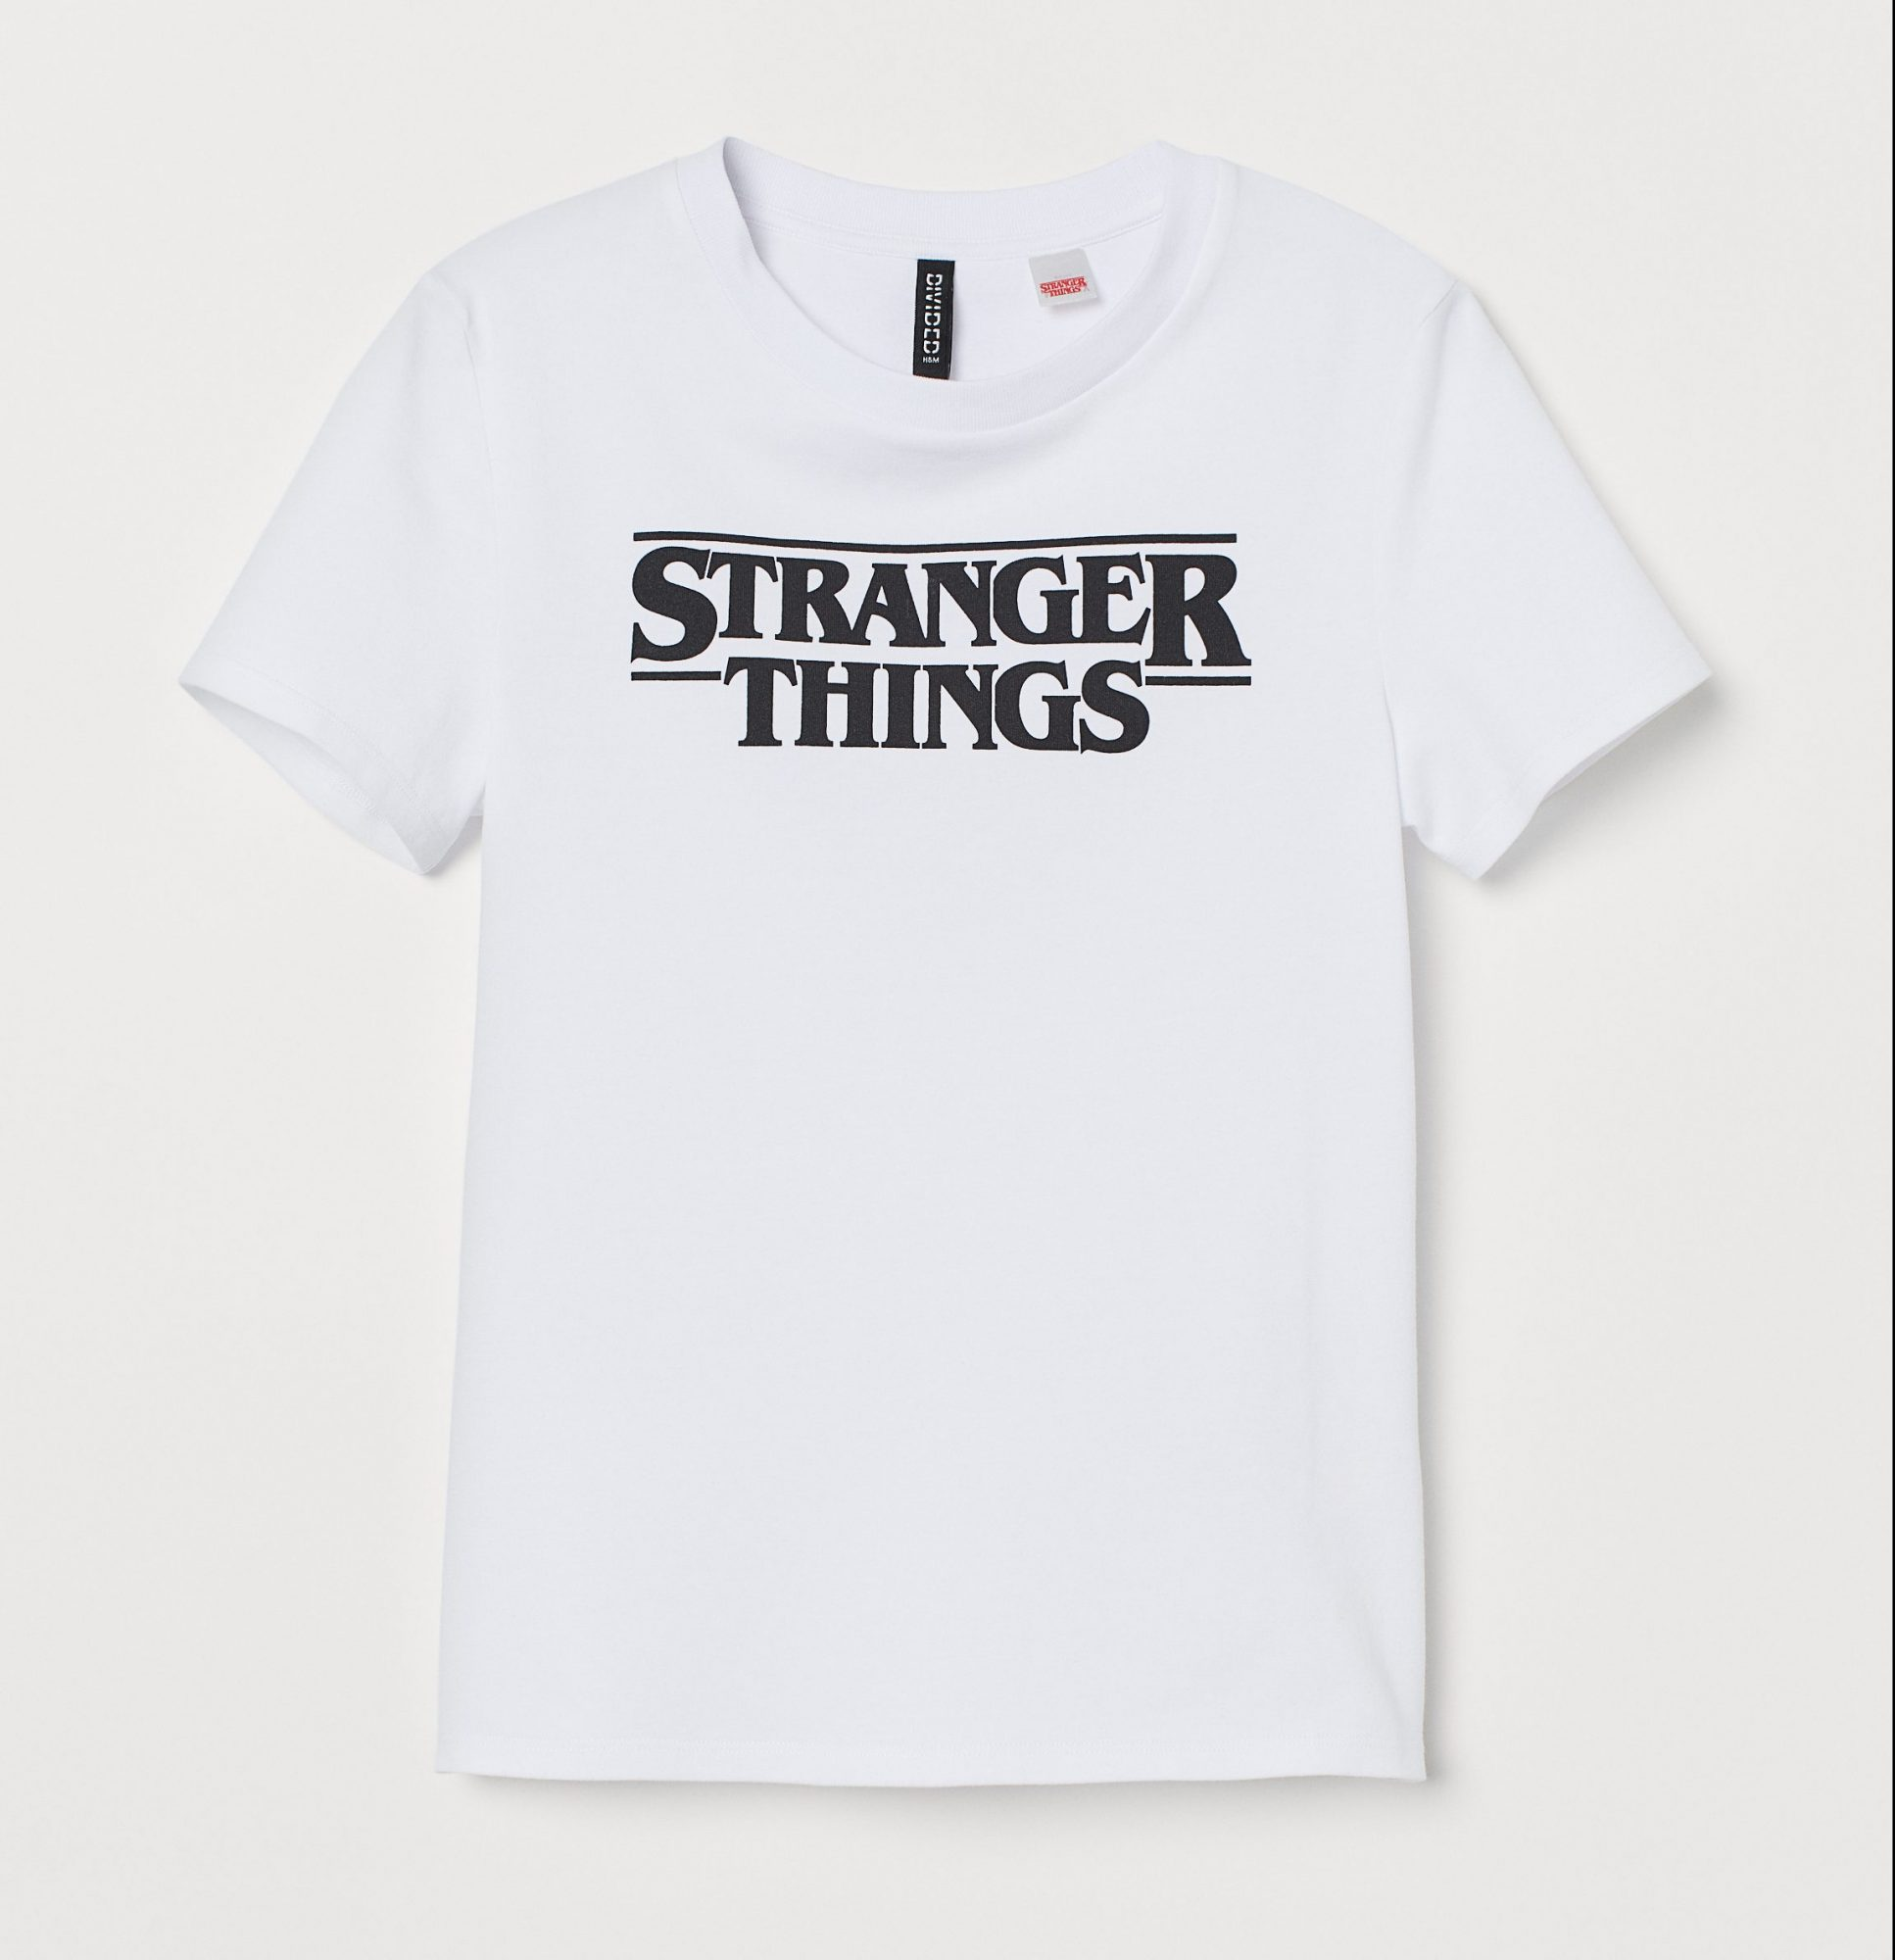 stranger-things-hm-tshirt-e1557343812236.jpg